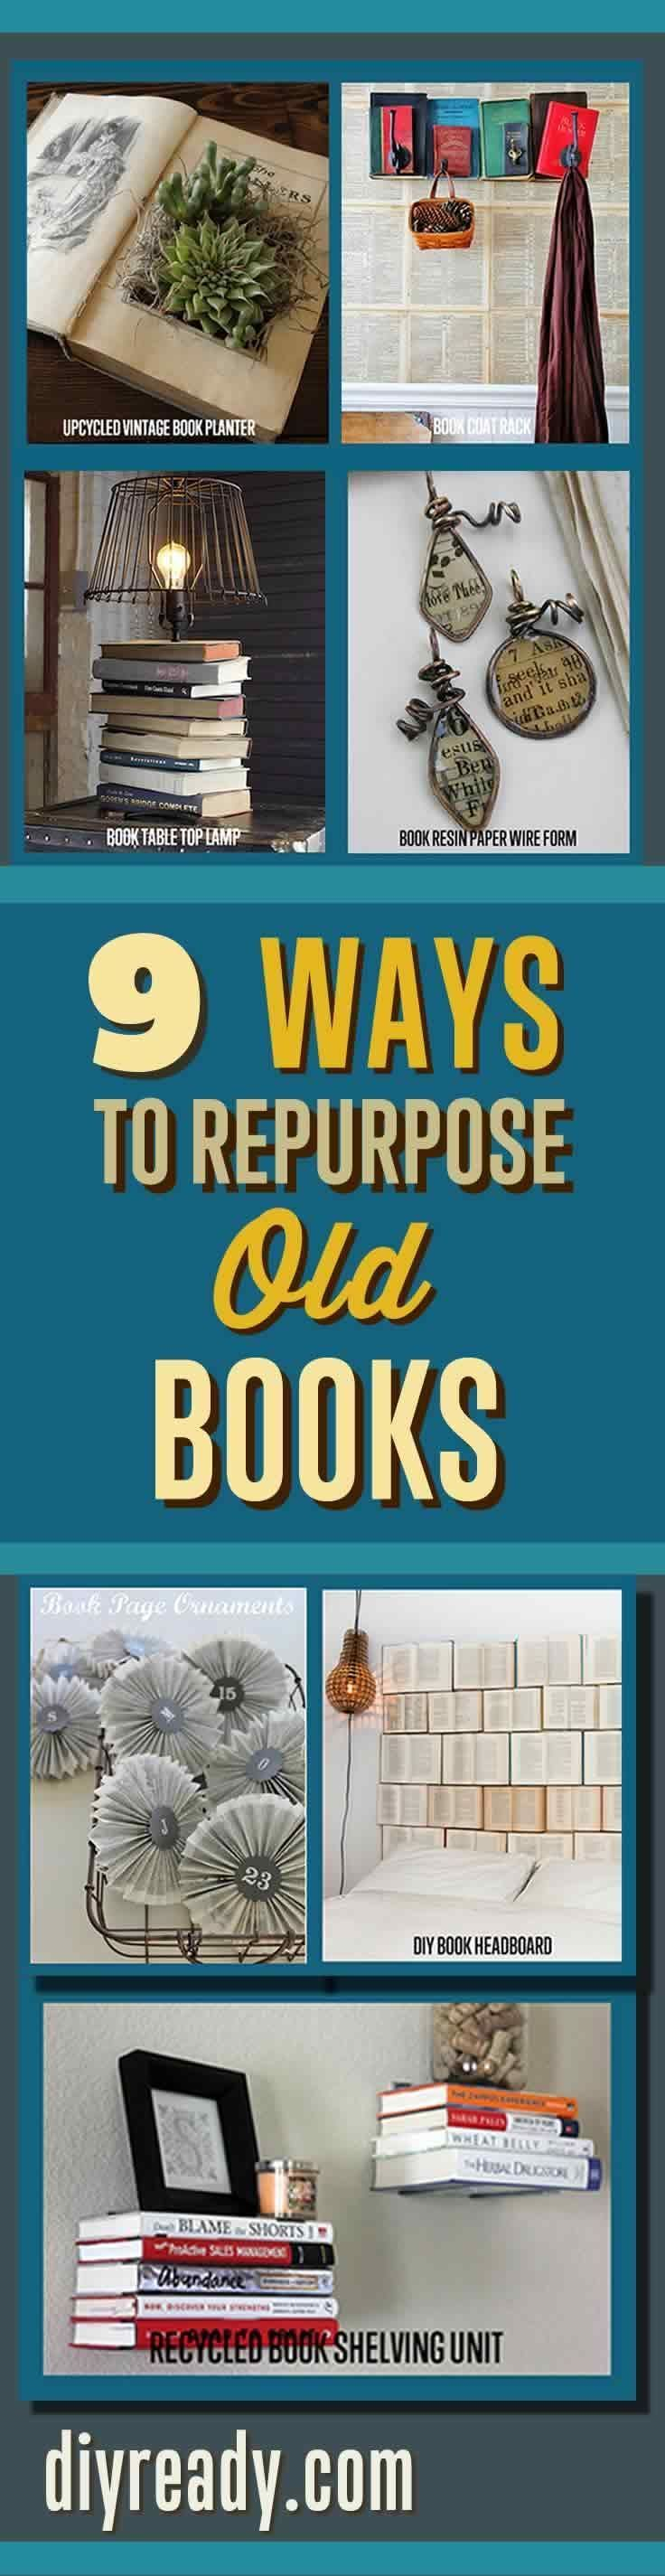 208 best books reuse repurpose upcycle images on pinterest 208 best books reuse repurpose upcycle images on pinterest books vintage books and old books